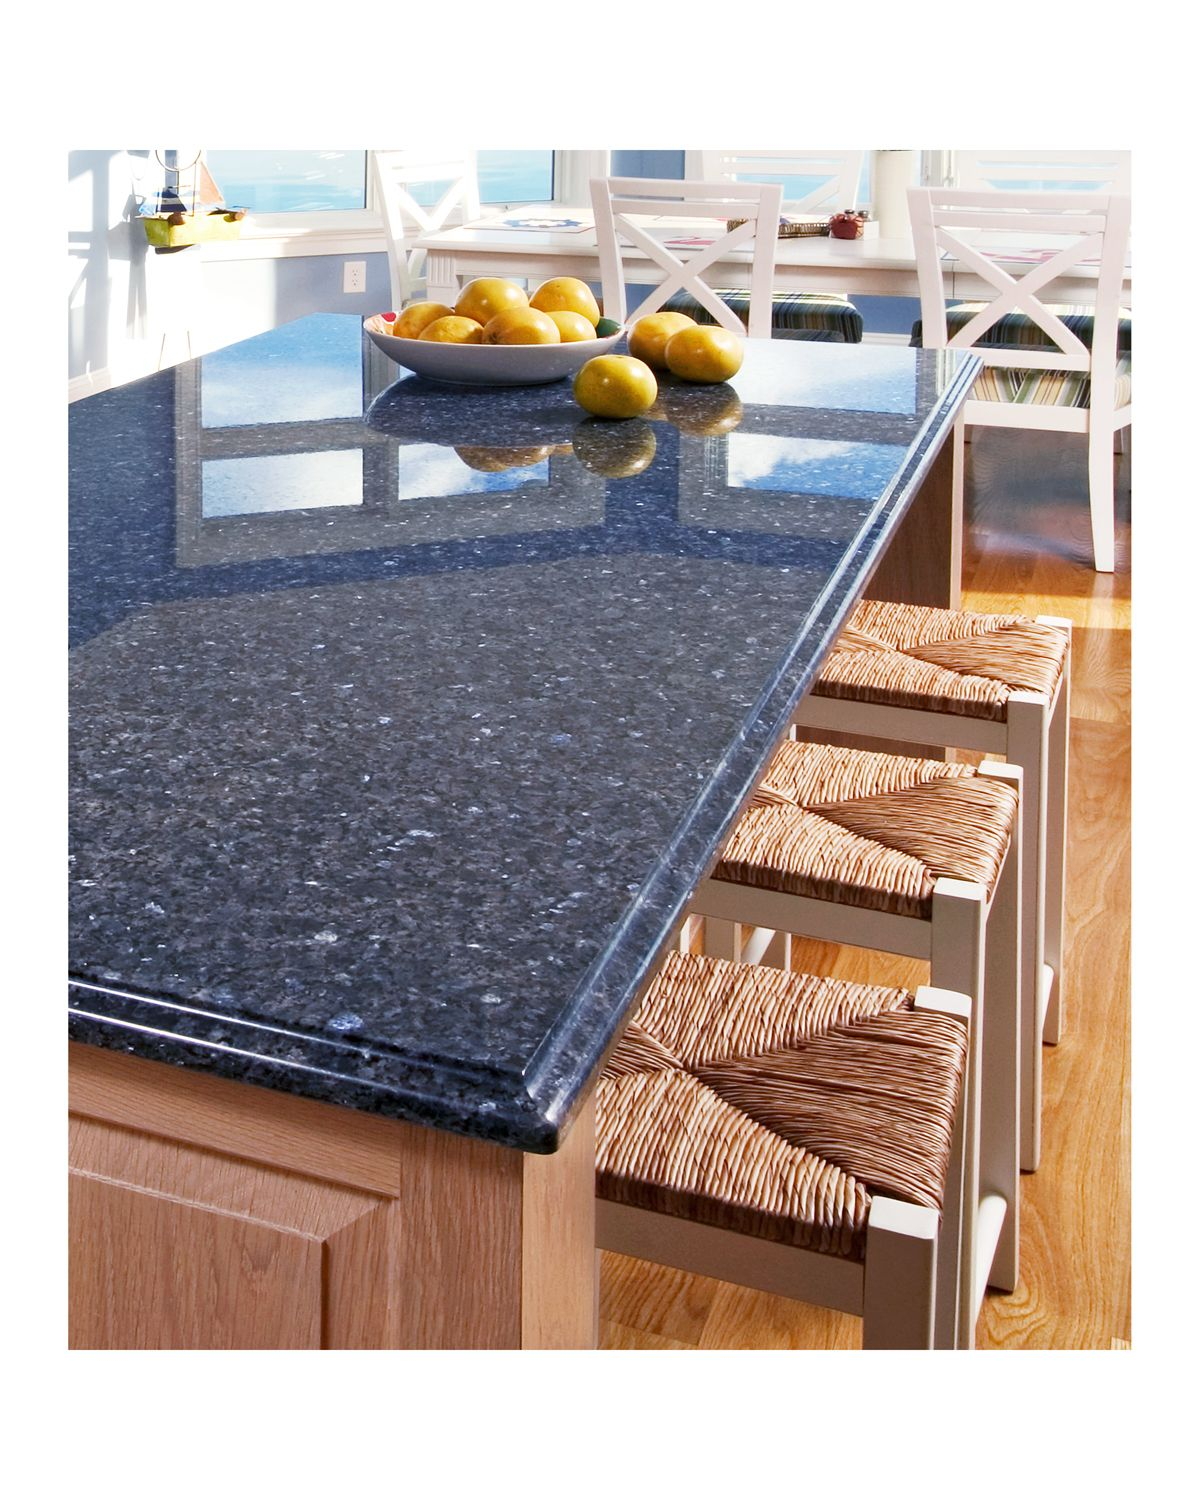 blue kitchen countertops decorative trash cans for kitchens beautiful